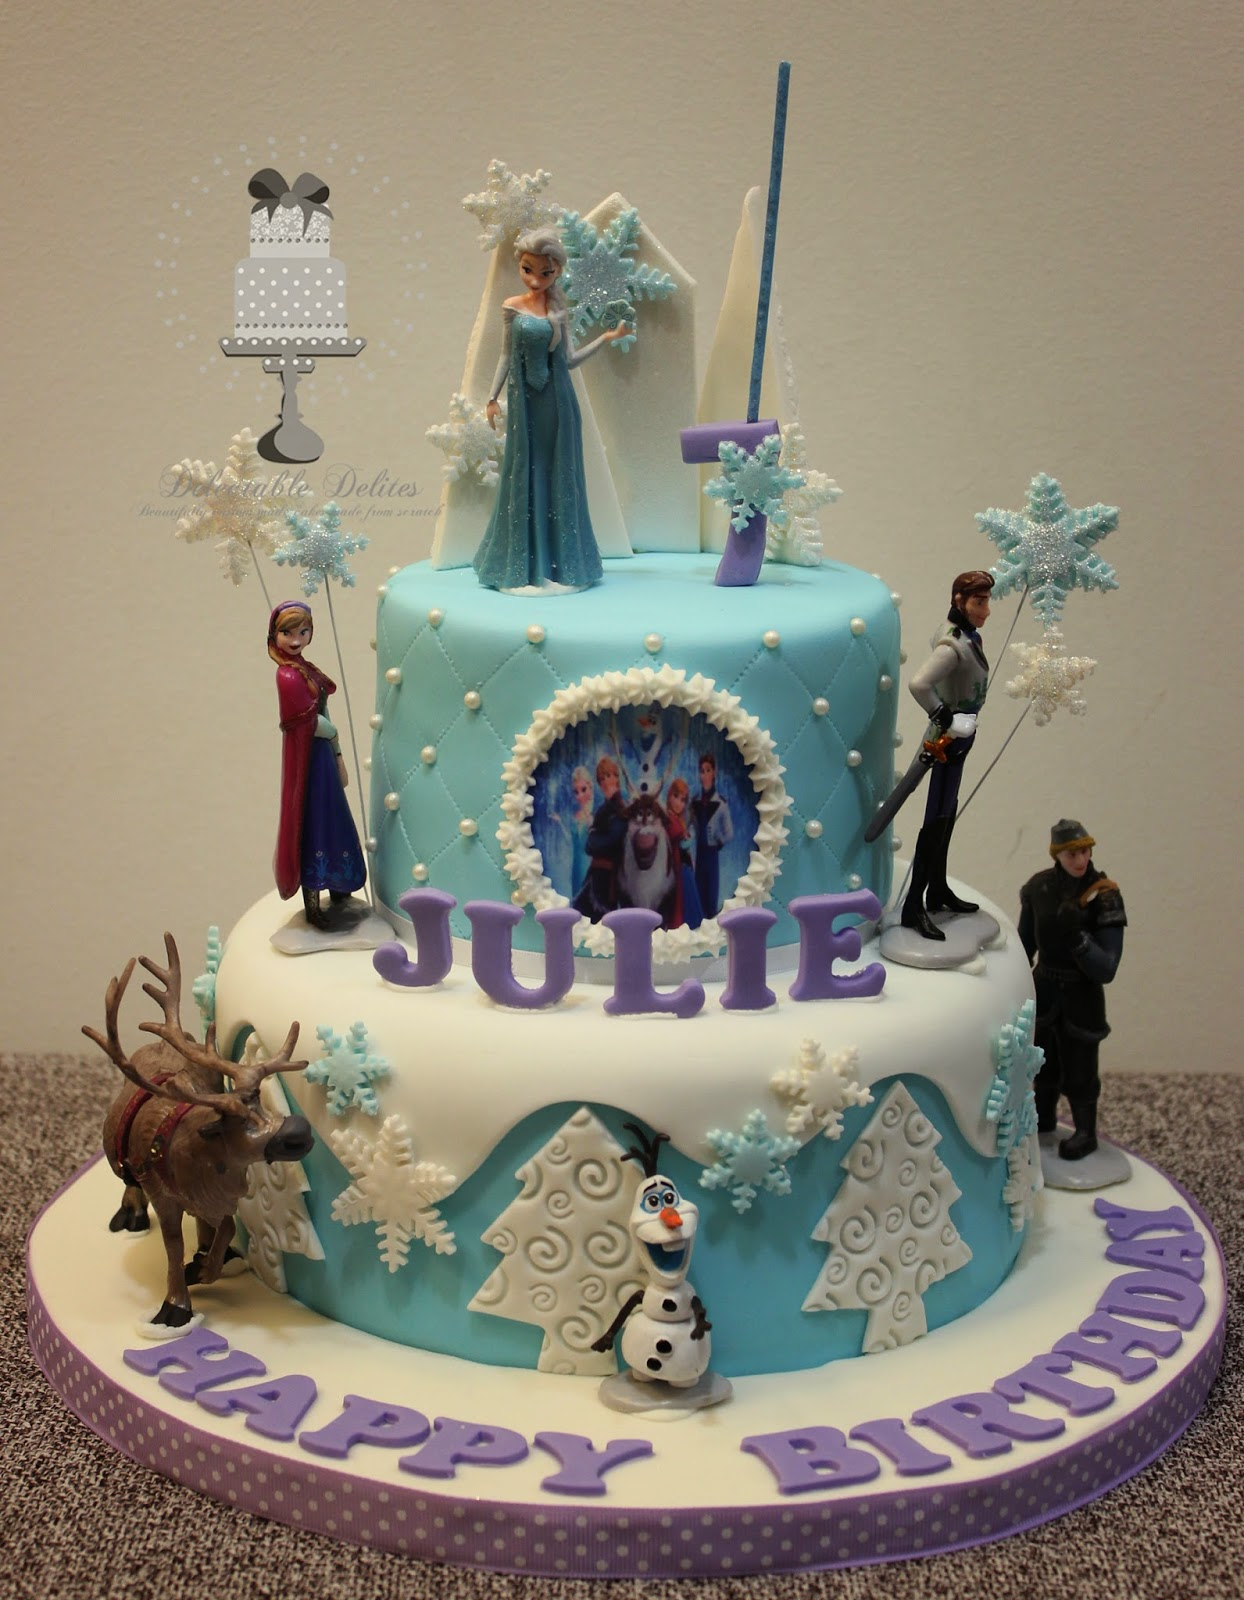 Delectable Delites Frozen Theme Cake For Julie S 7th Birthday